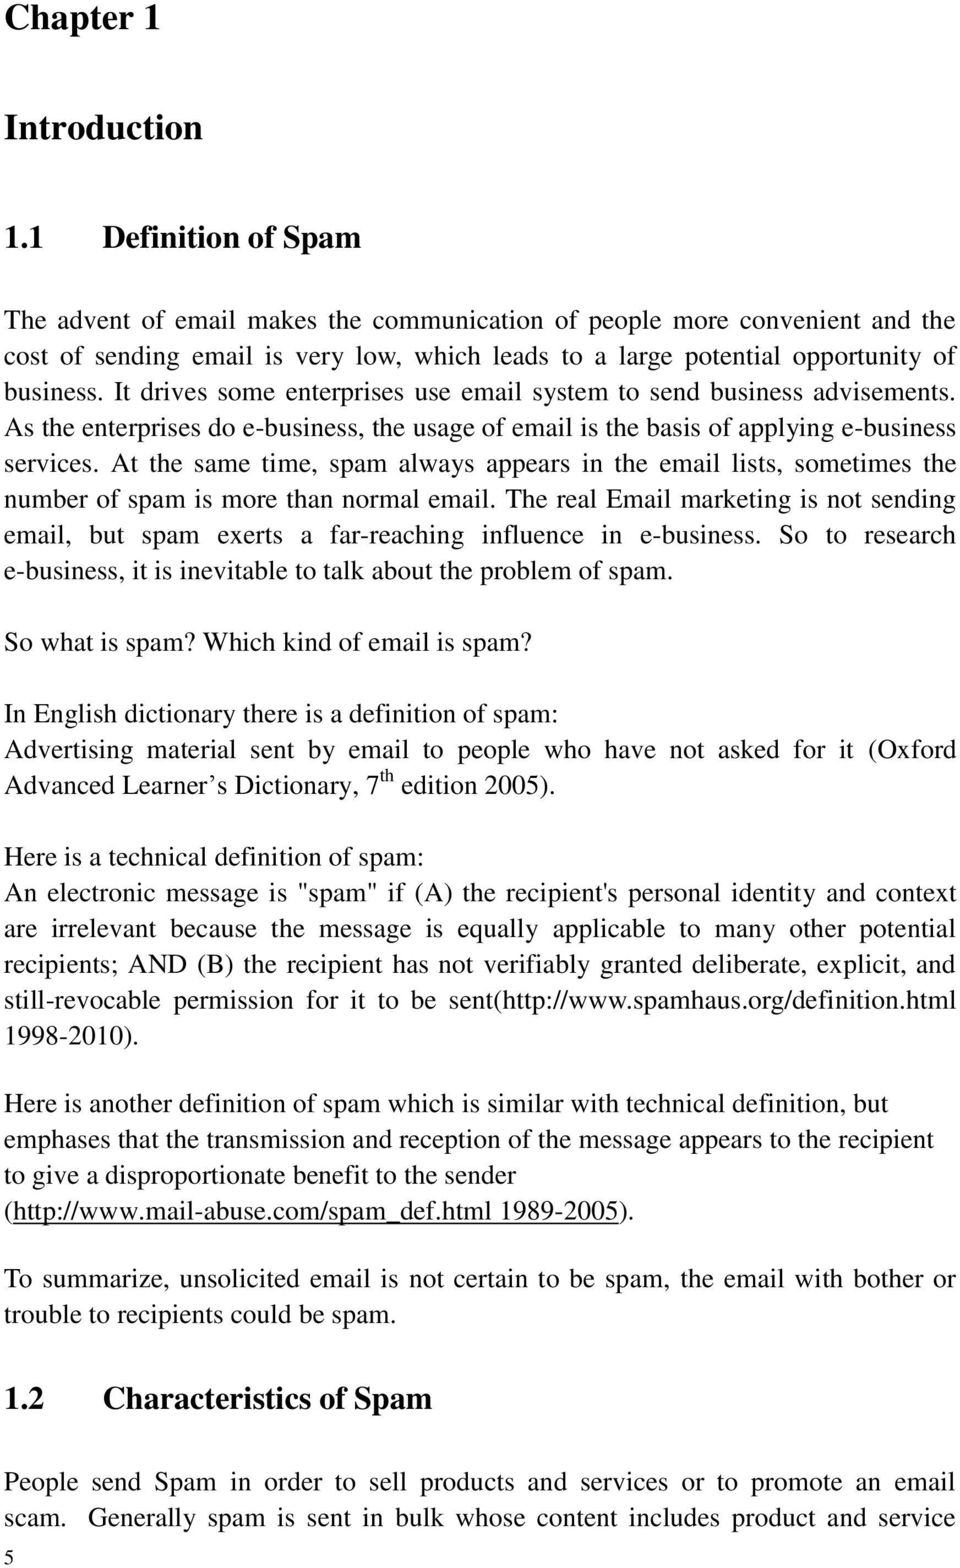 solutions to spam. simple analysis of solutions to spam. thesis